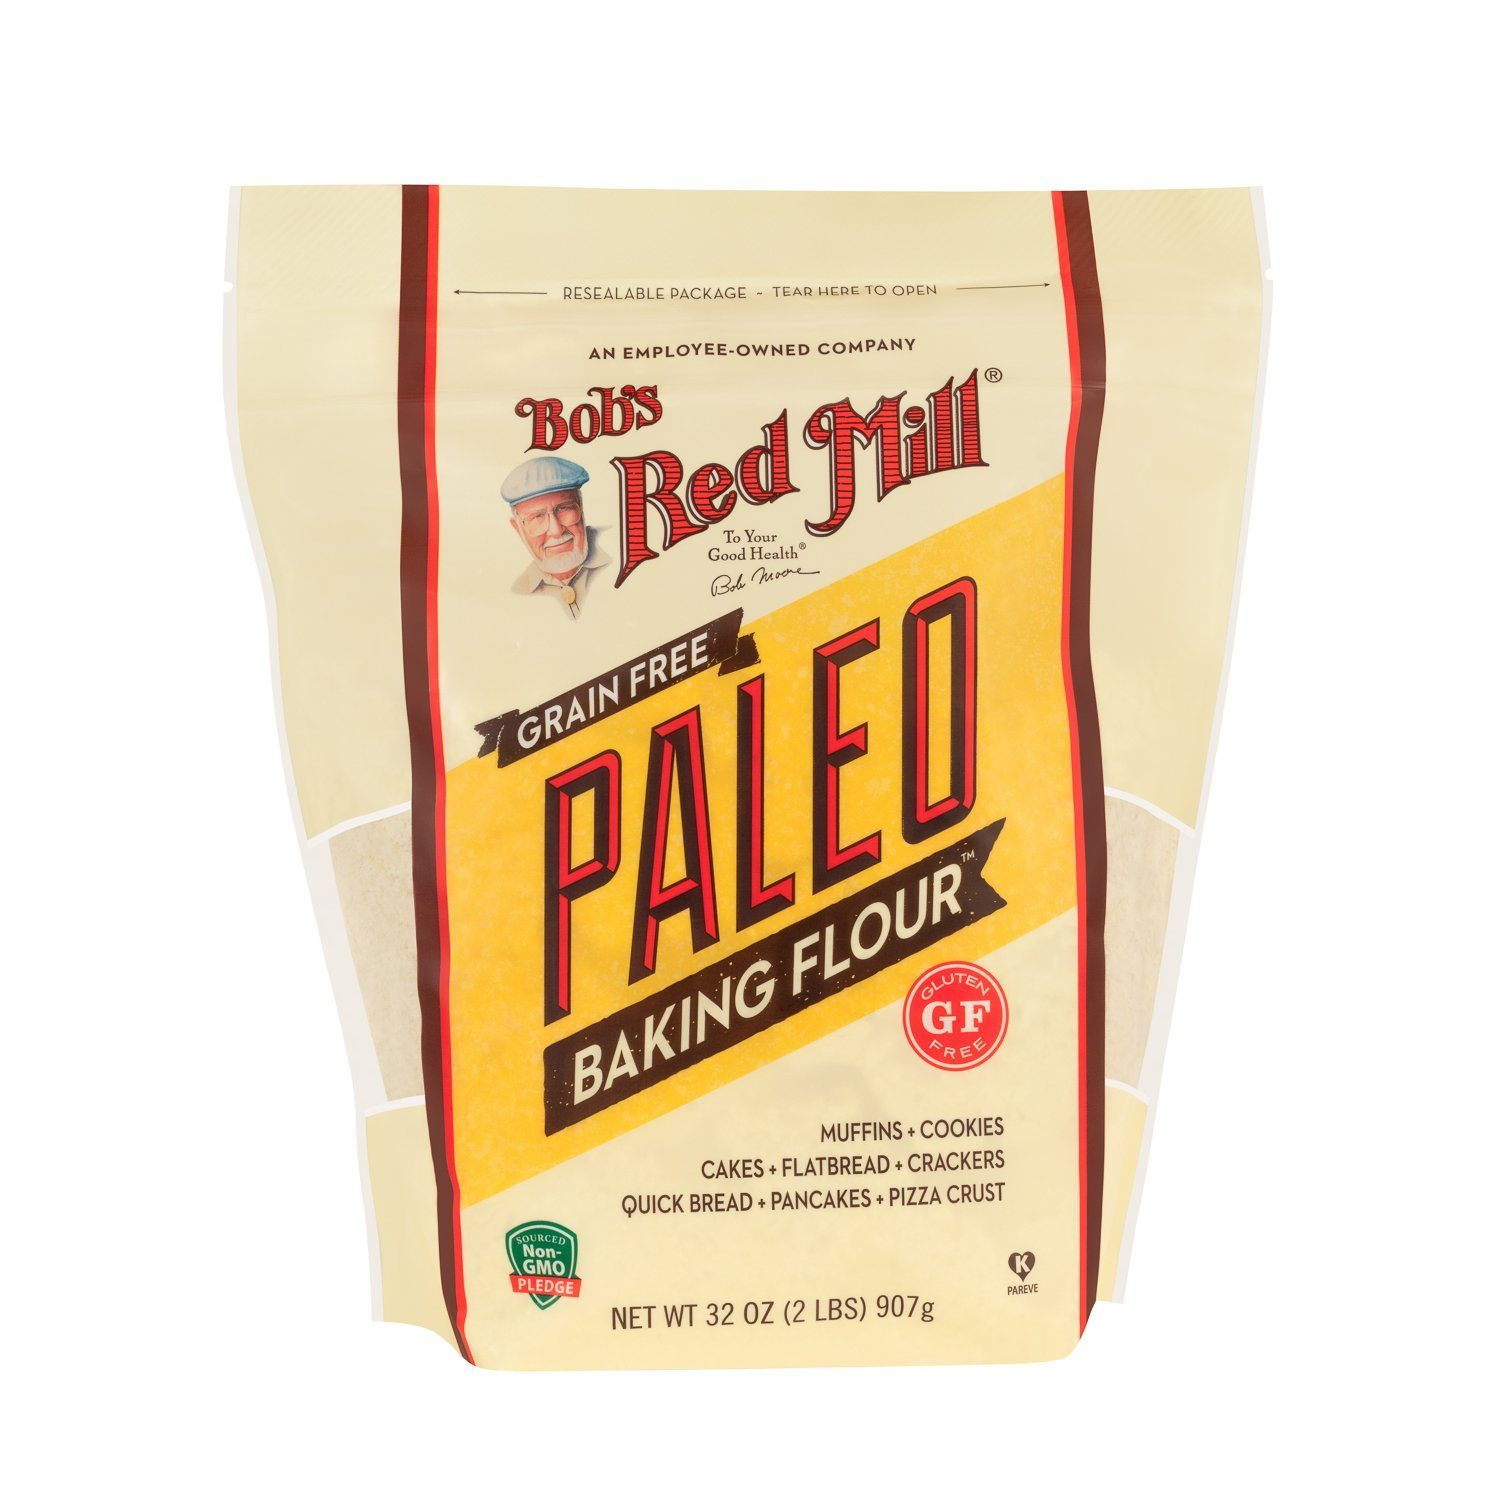 Bob's Red Mill Paleo Baking Flour Bob's Red Mill 32 Ounce